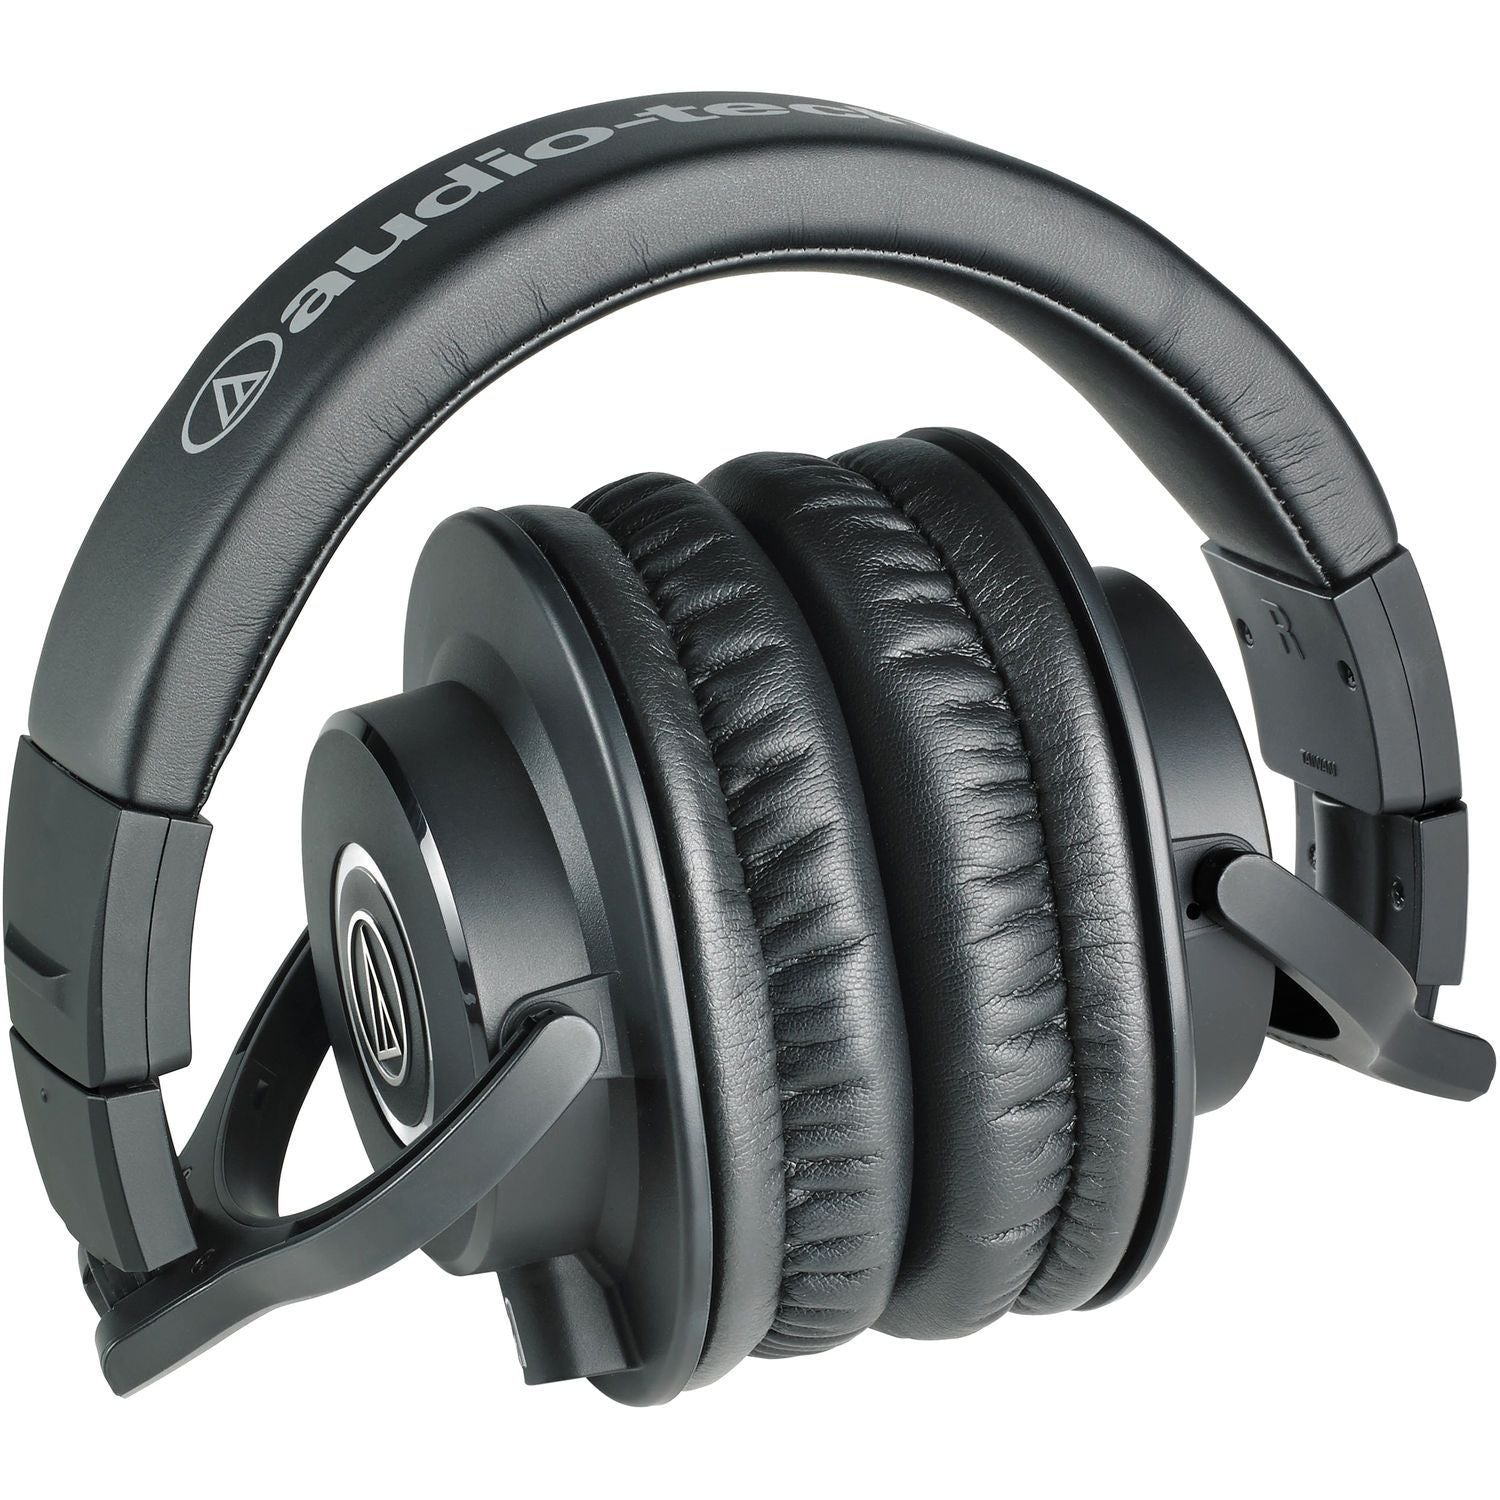 Audio-Technica ATH-M40x Closed Back Studio Monitoring Headphones